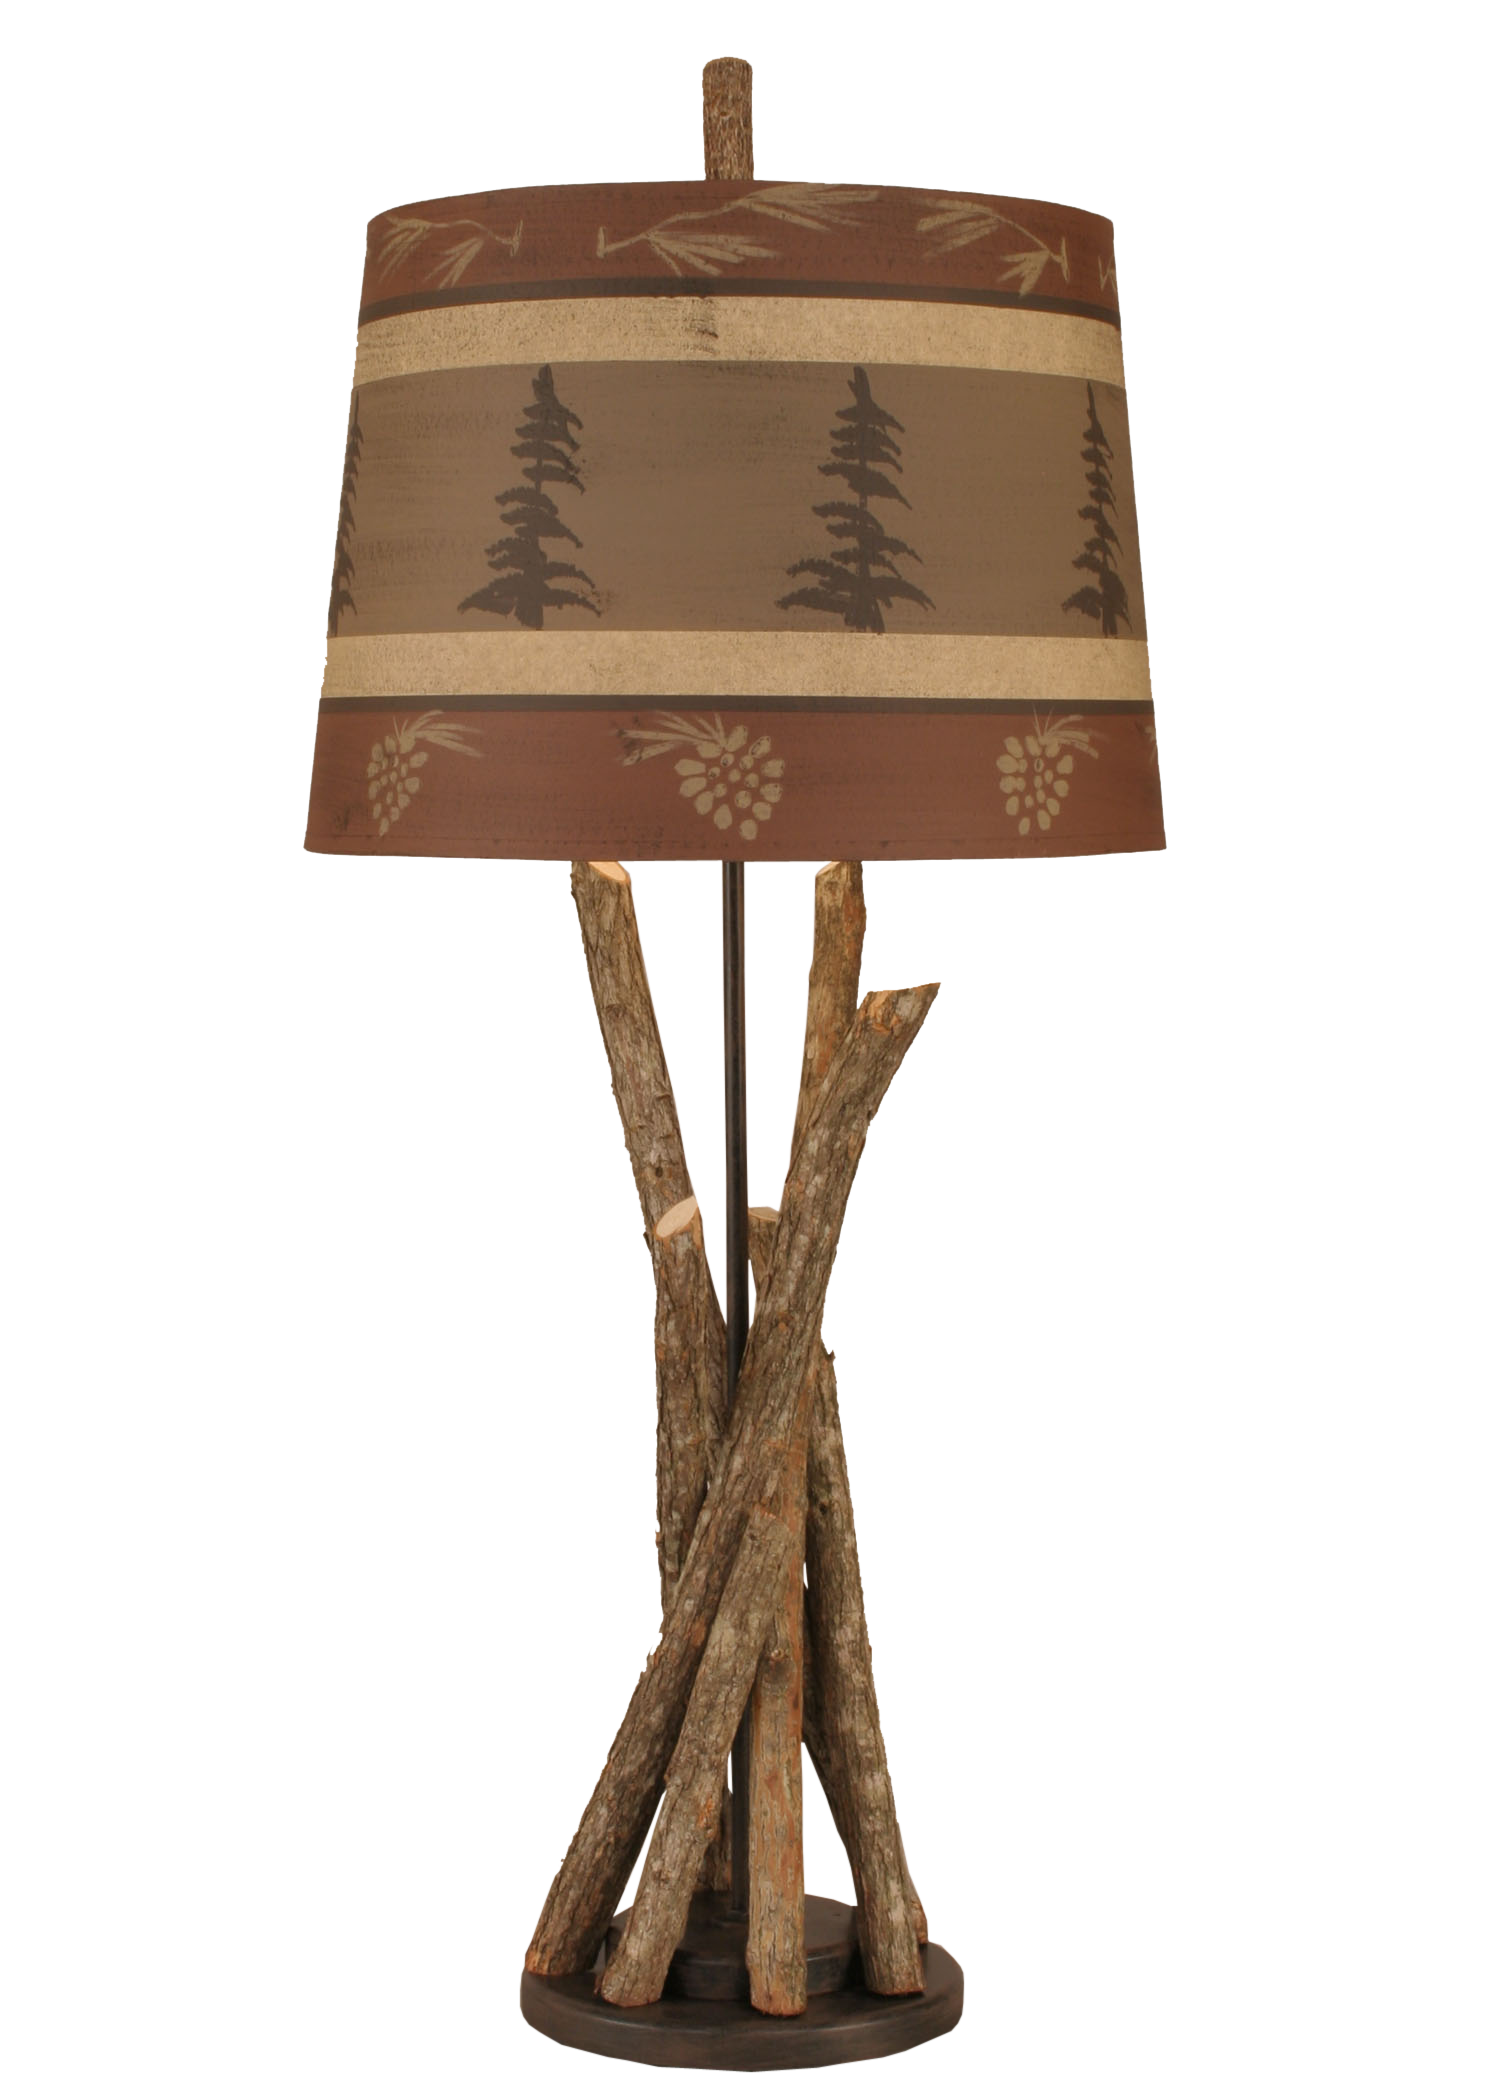 Bundle Of Sticks Table Lamp w/ Rust Tree and Pine Cone Shade - Coast Lamp Shop